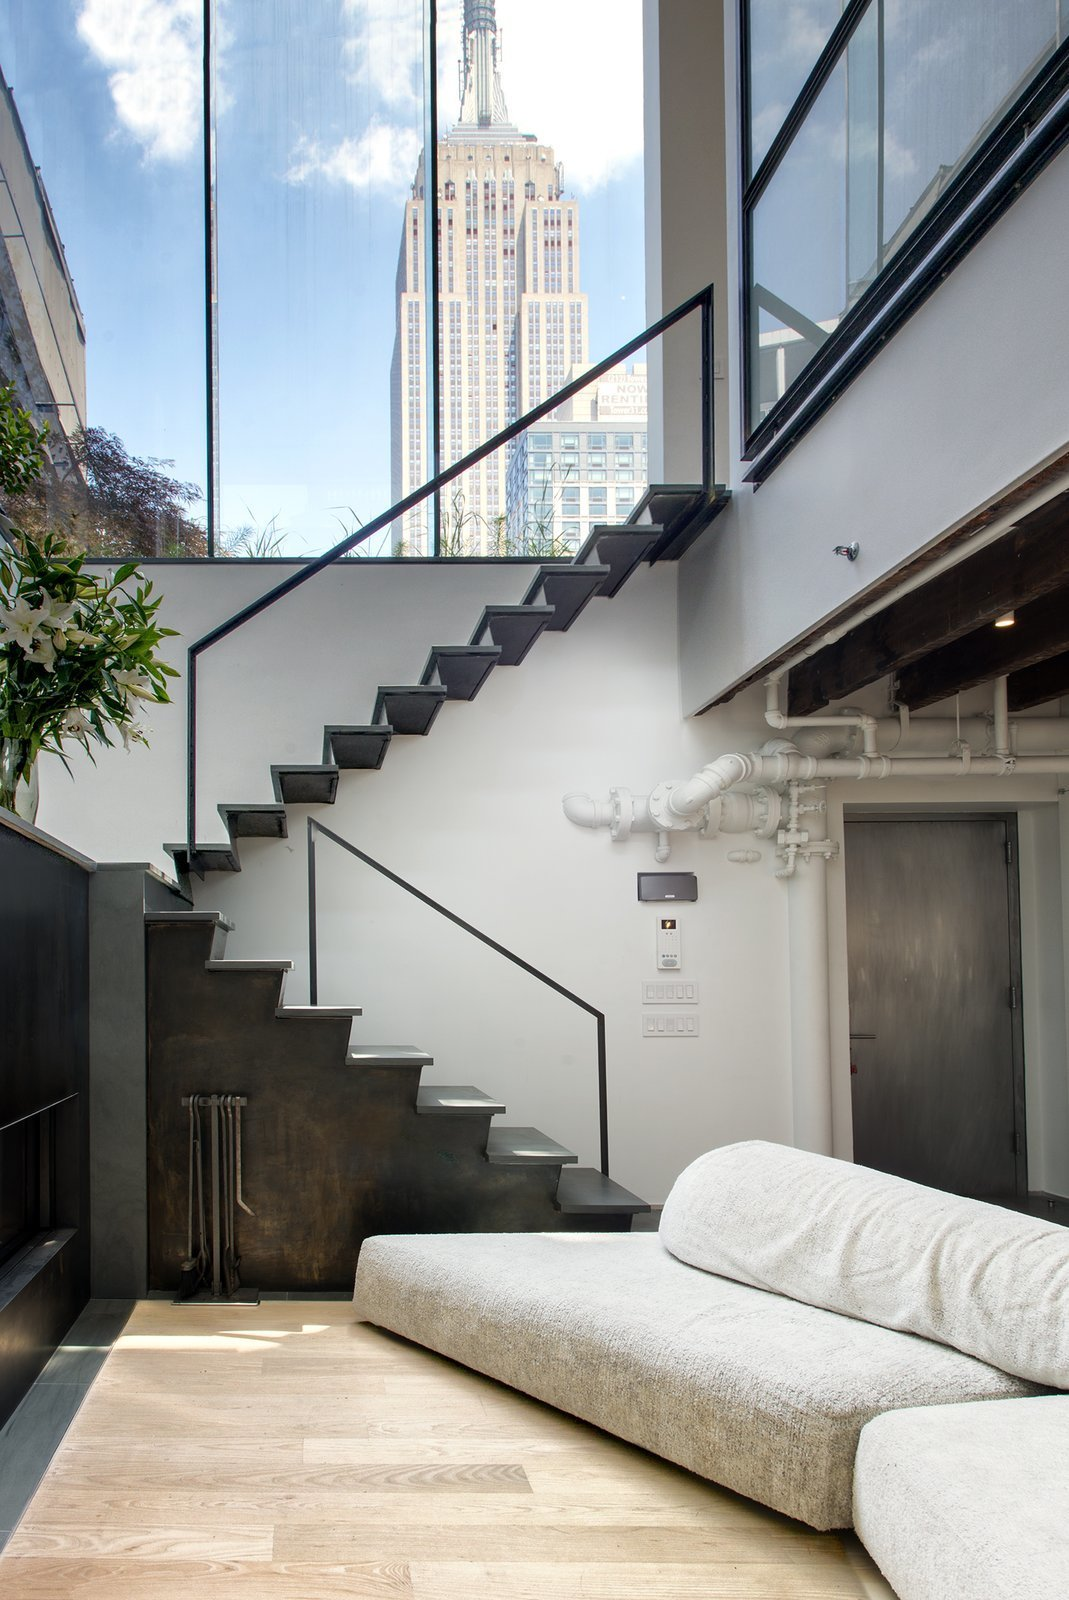 Staircase, Metal Railing, and Metal Tread  Best Photos from 8 Best Dwell Penthouses